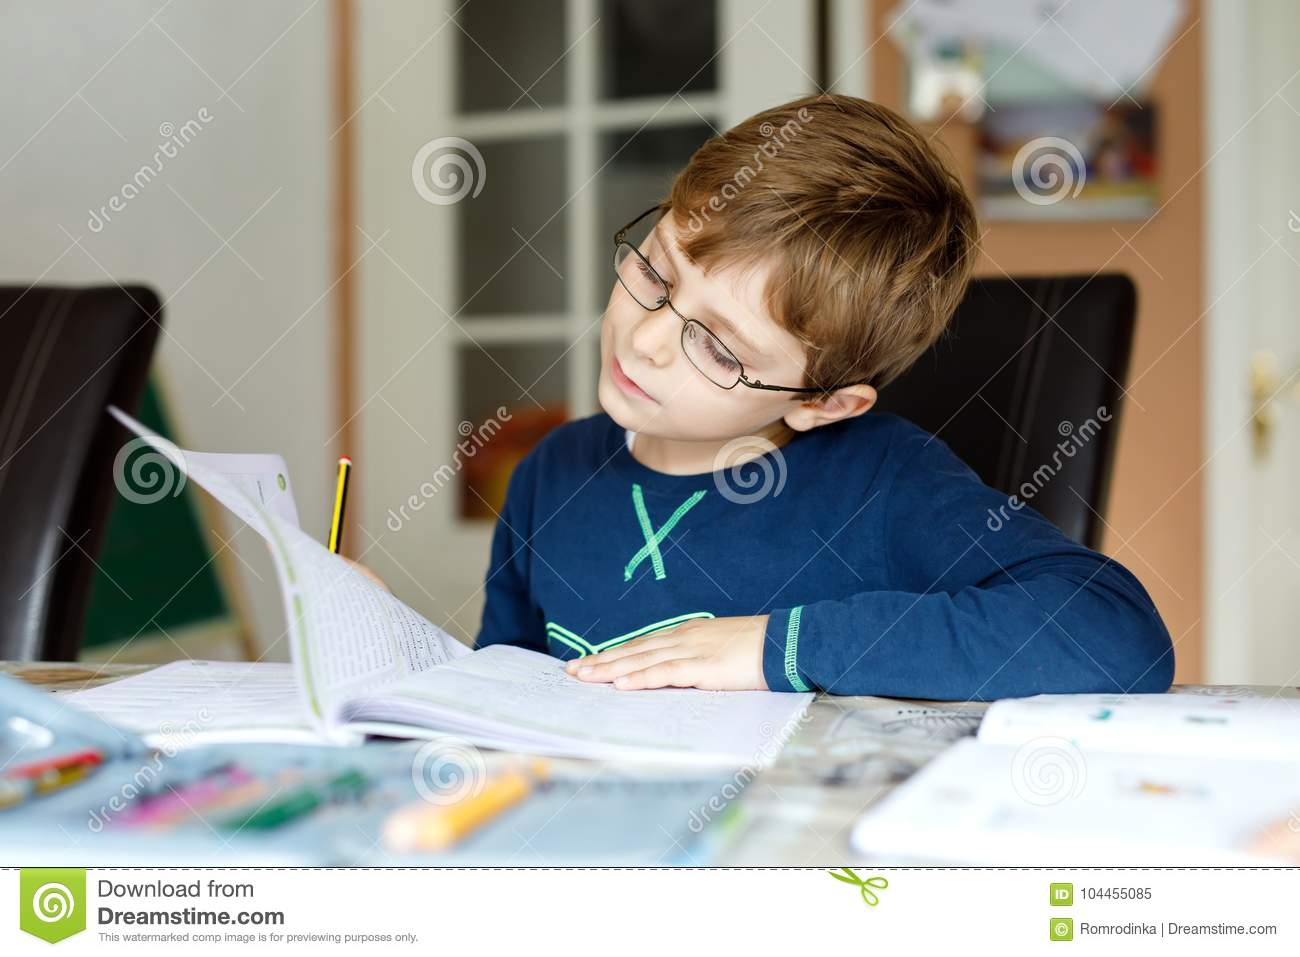 fc95540eac9 Portrait of cute school kid boy wearing glasses at home making homework.  Little concentrated child writing with colorful pencils